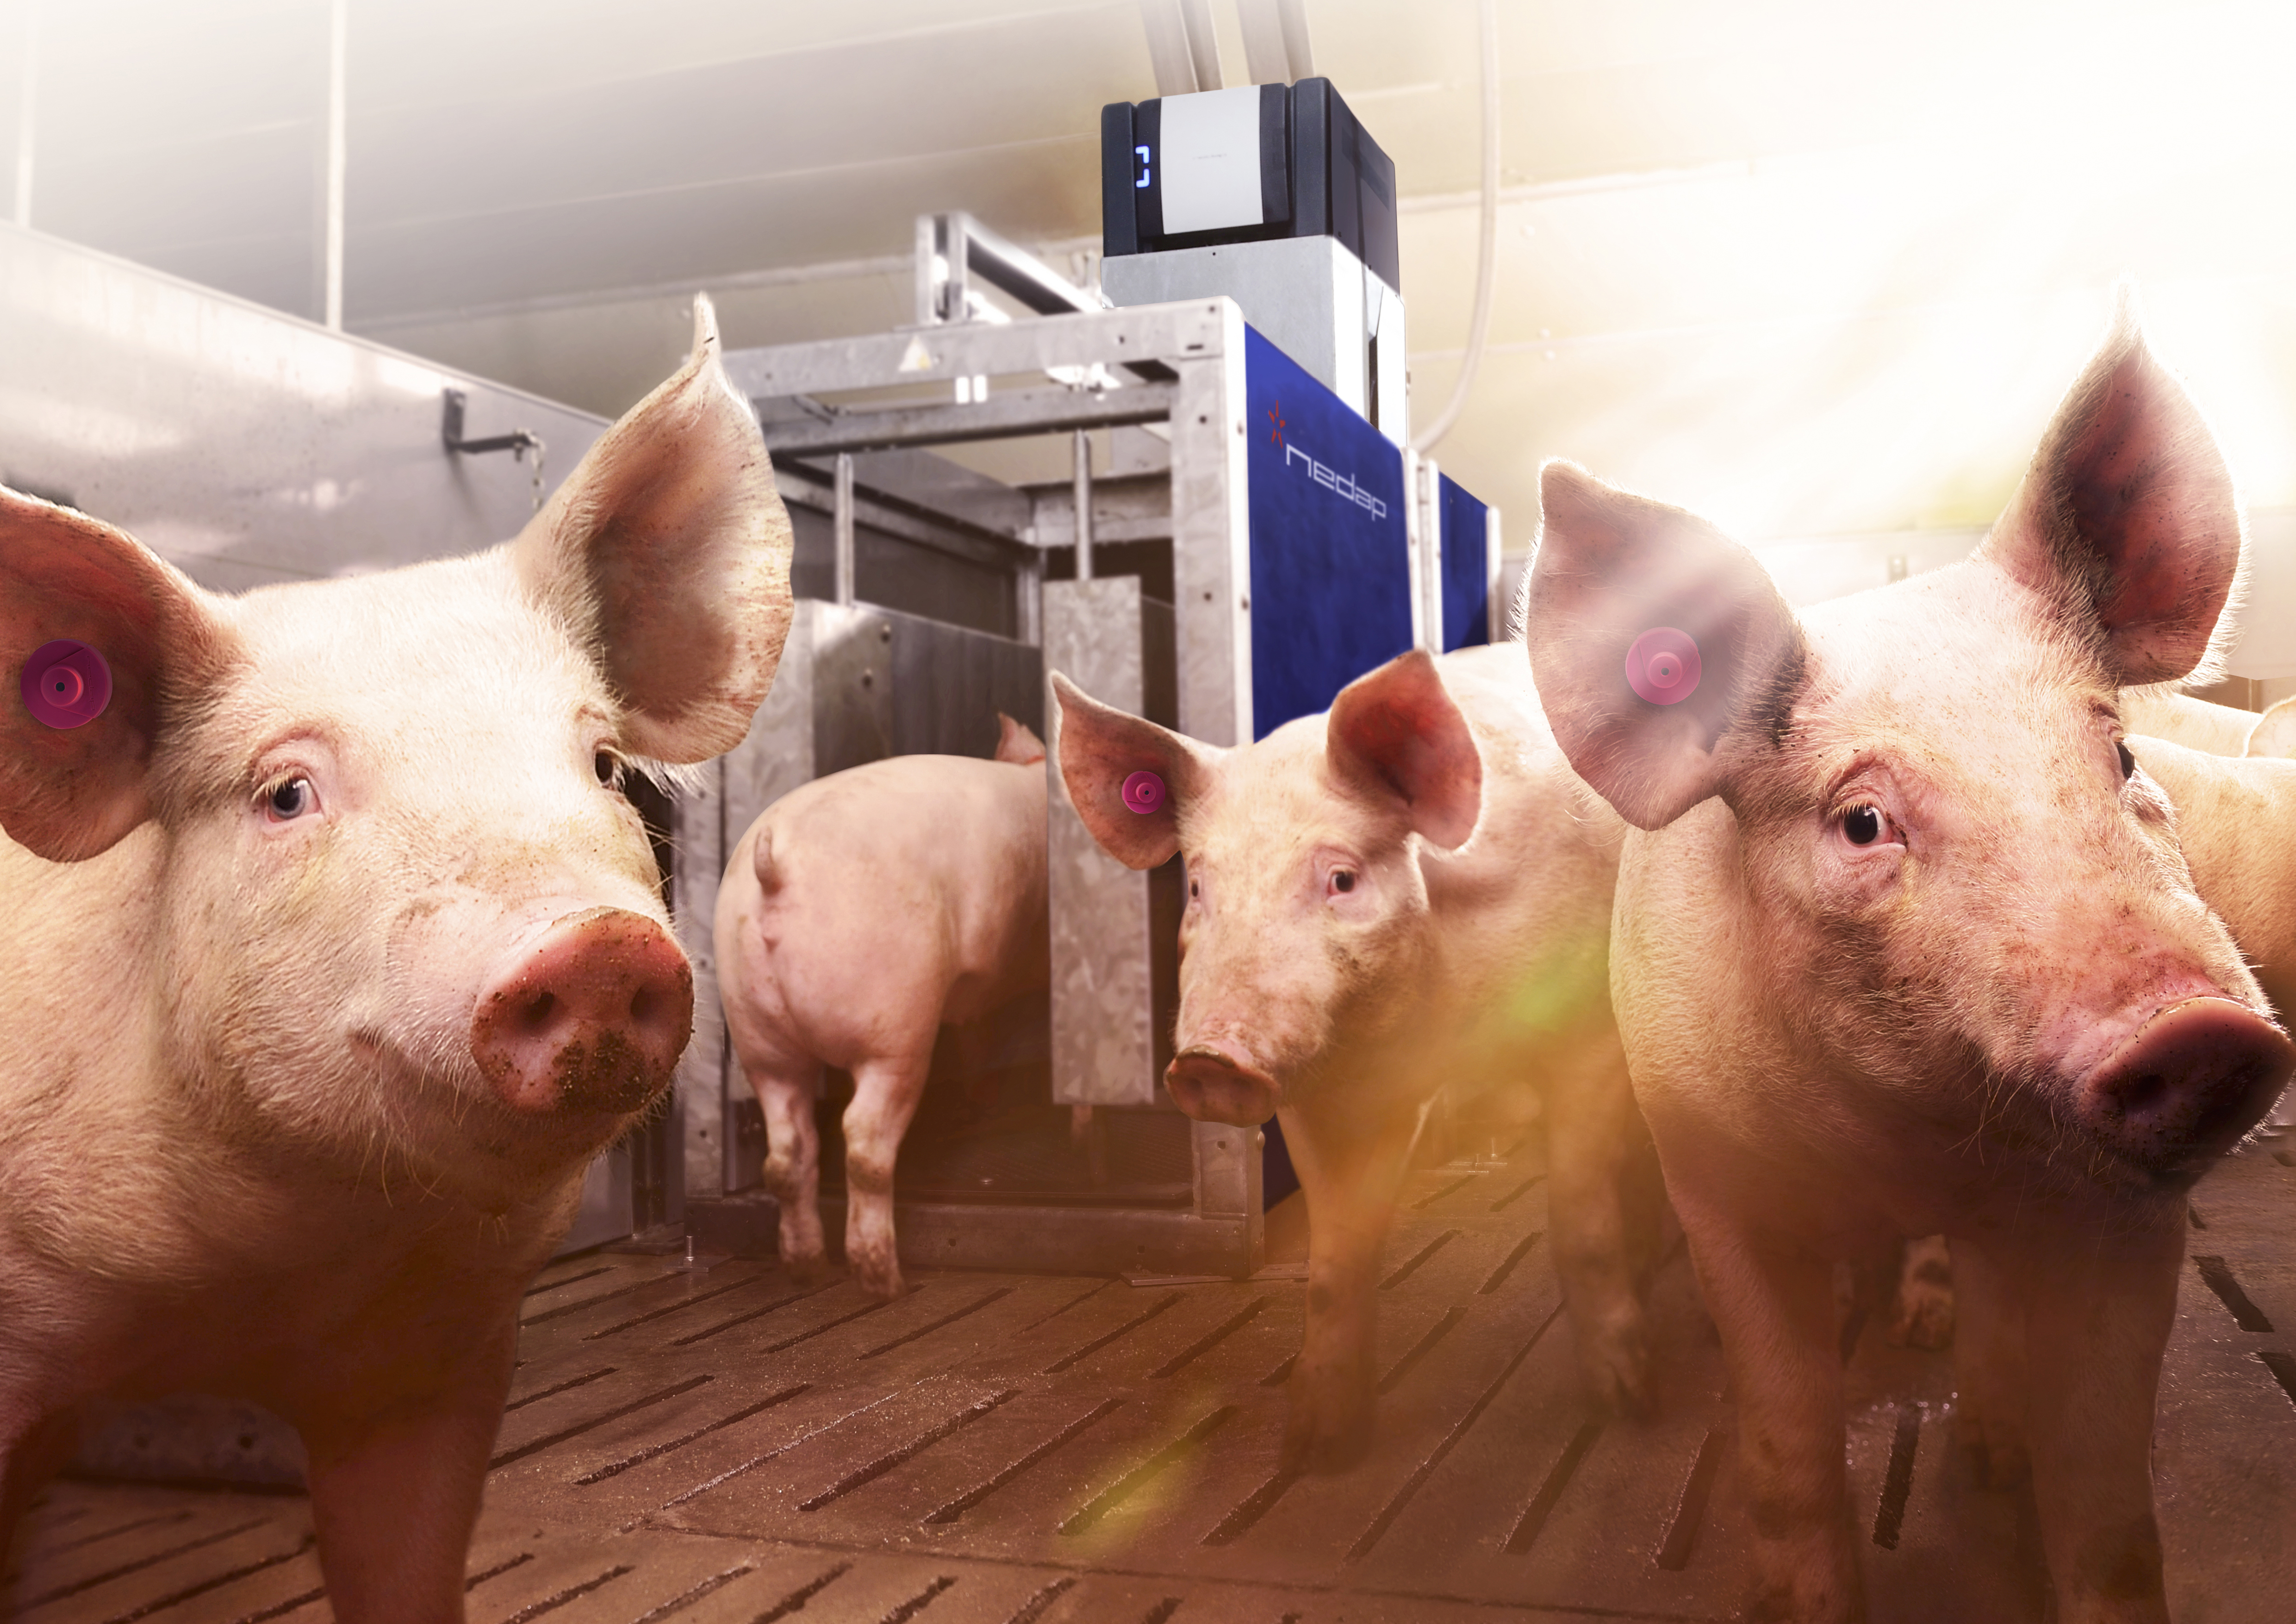 PPT, Pig Performing Test